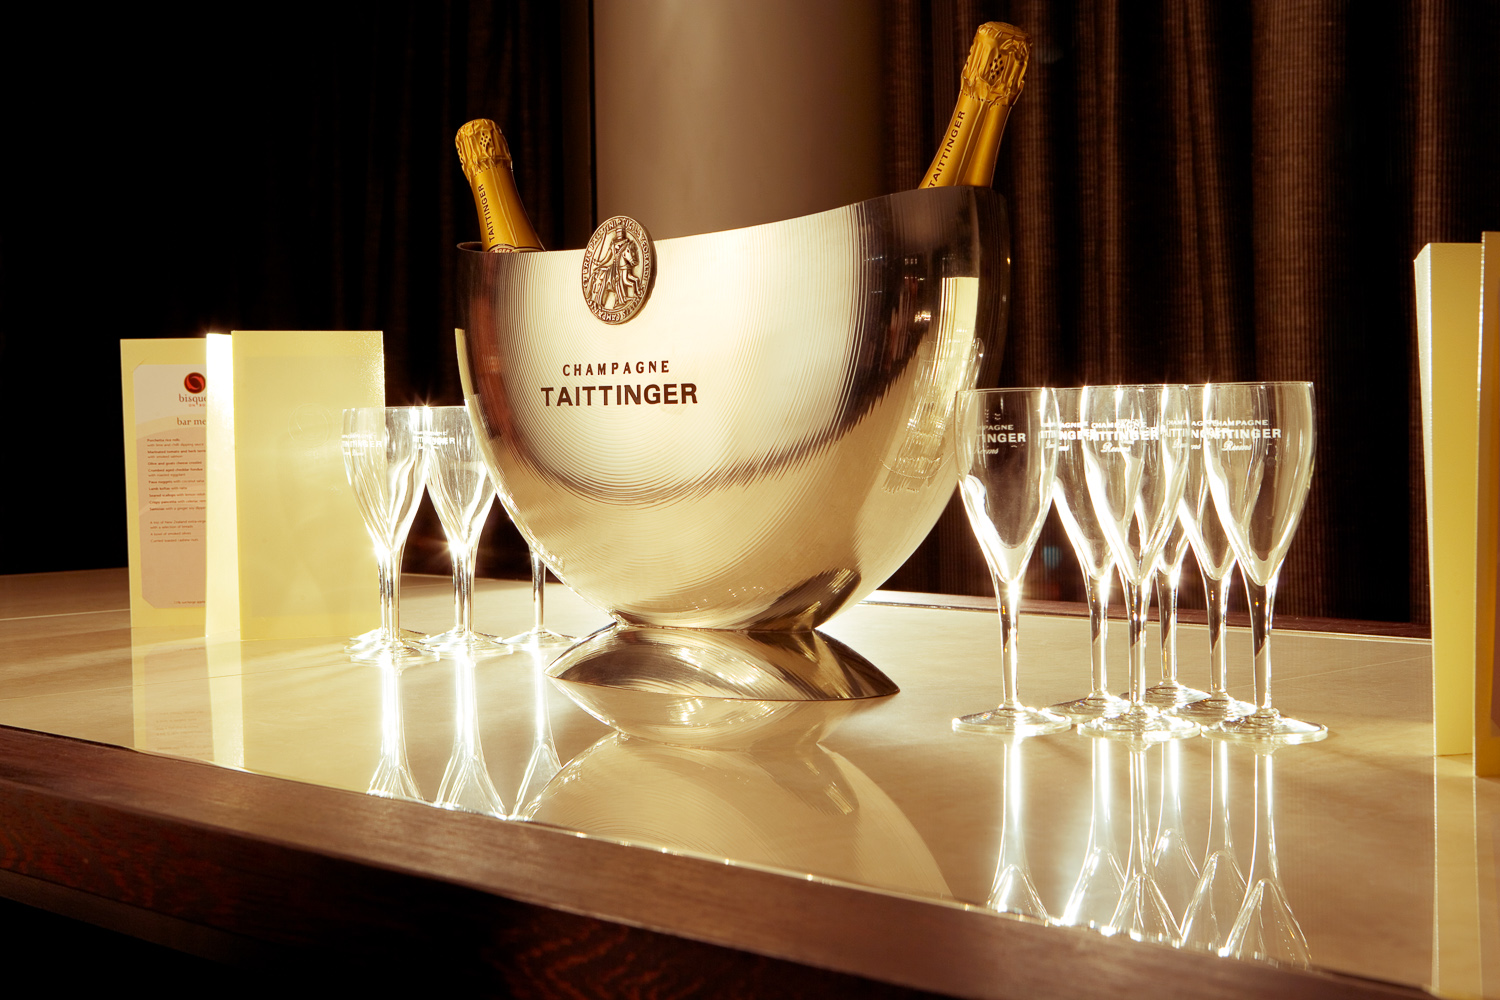 Entertain-champagne-Wellington-photographer-Paul-Fisher.jpg